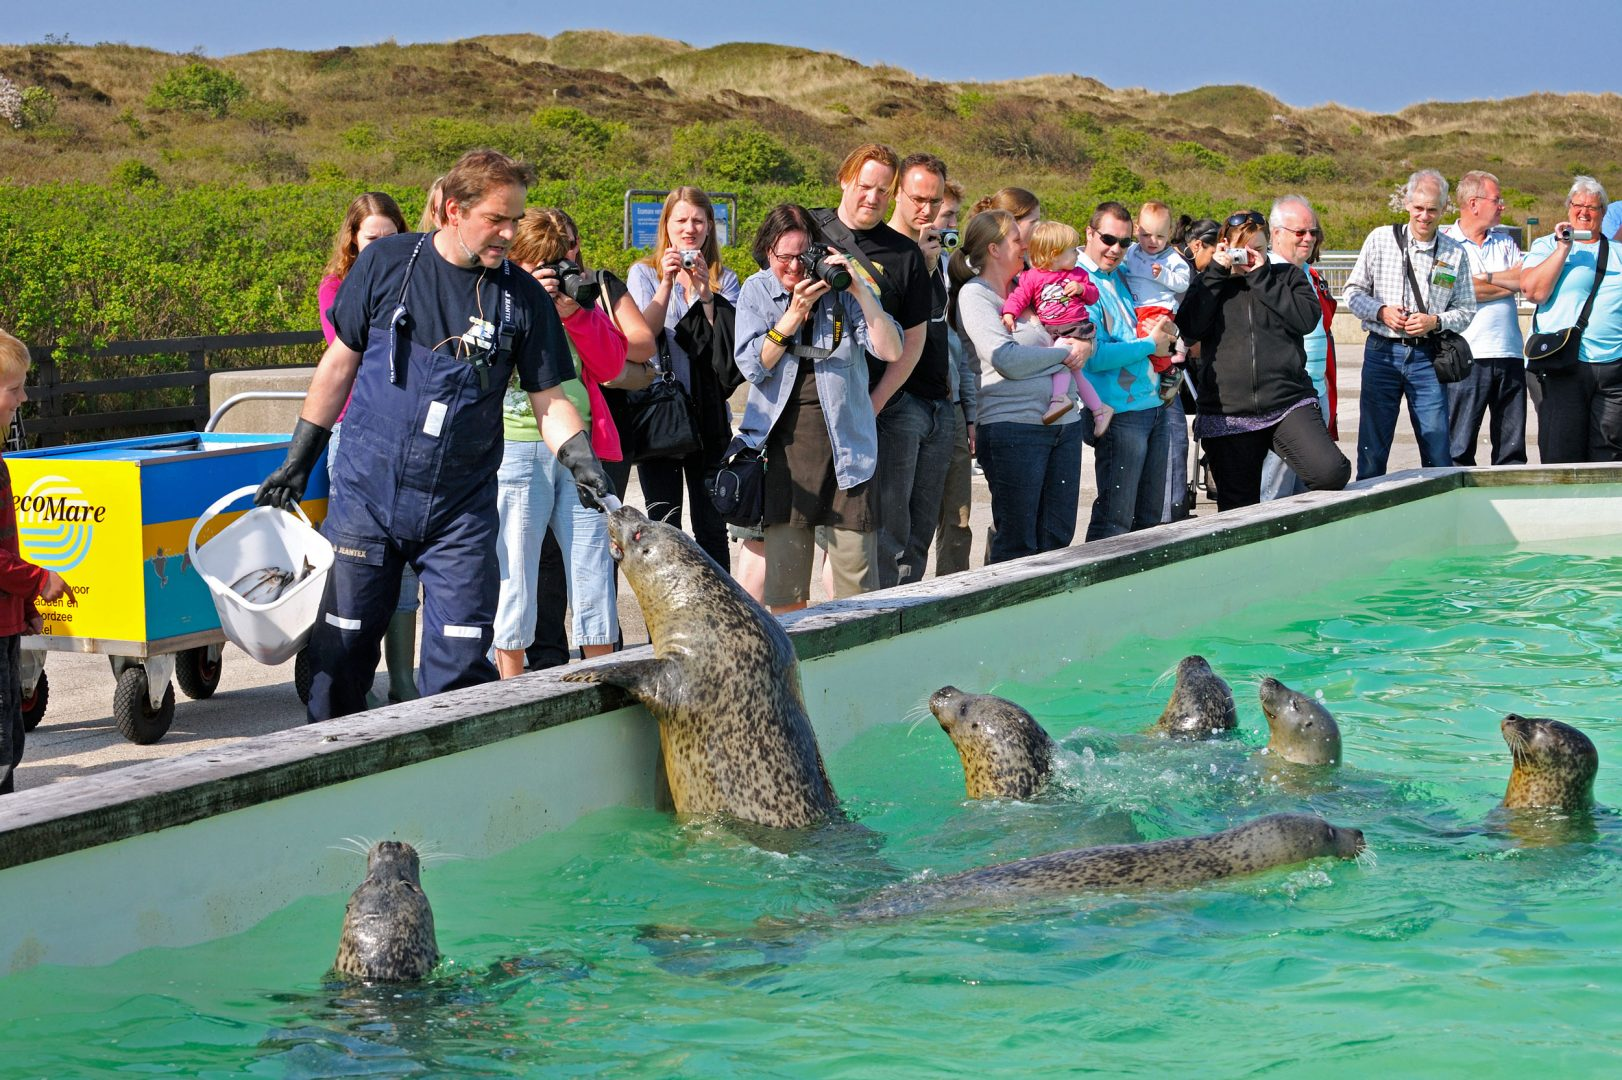 Ecomare Seal Rescue, Texel, The Netherlands